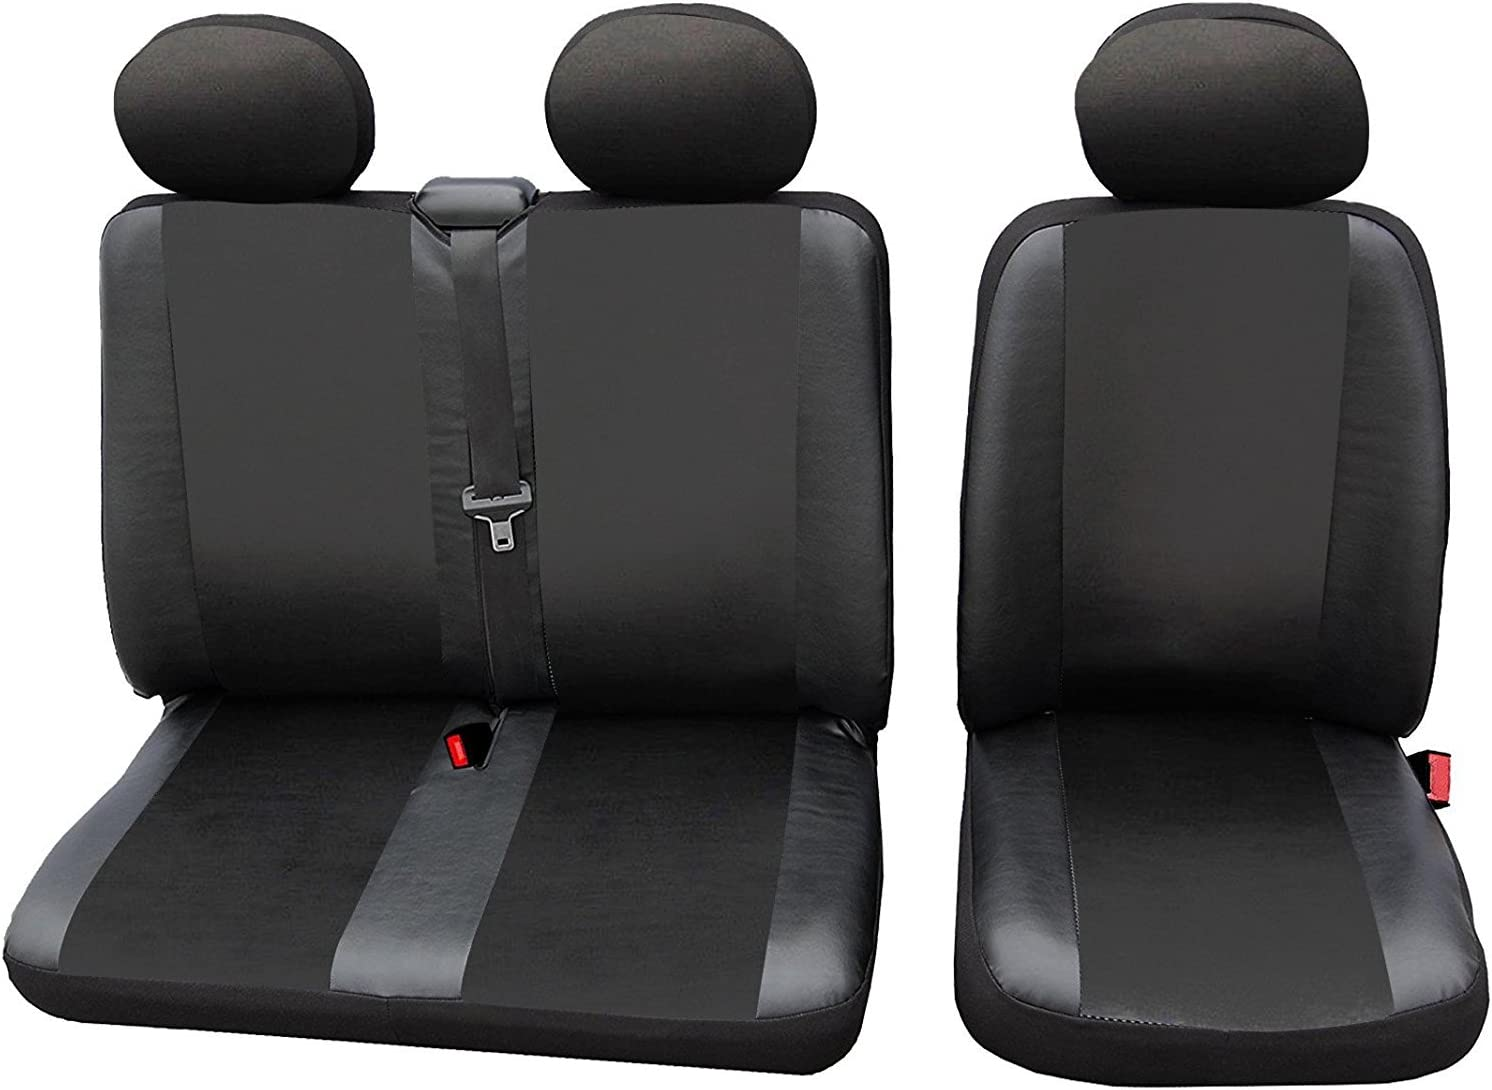 PEUGEOT EXPERT BOXER SEAT COVERS GREY BLACK FABRIC  FOR  2+1 VAN